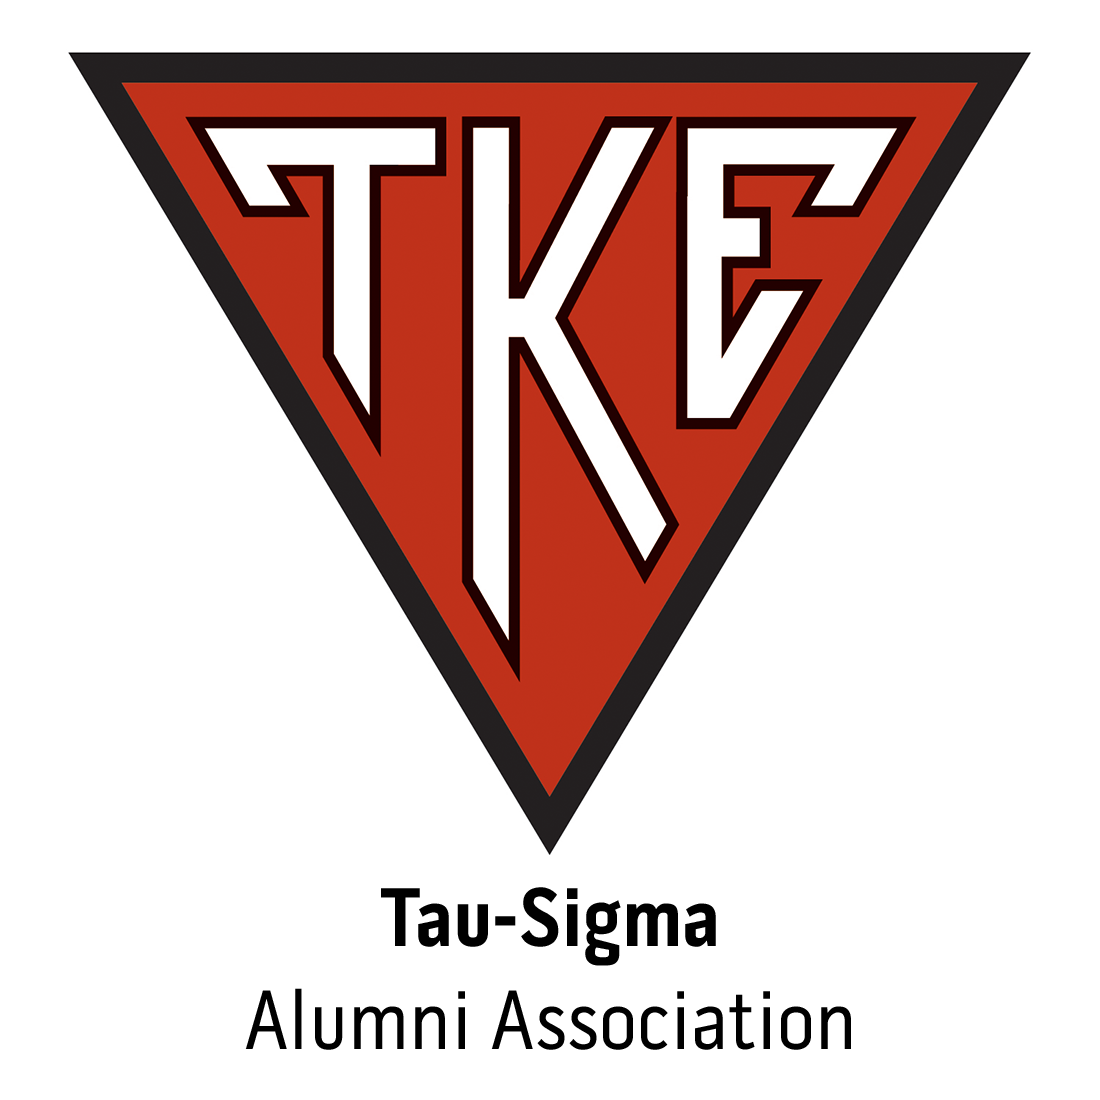 Tau-Sigma Alumni Association at Francis Marion University